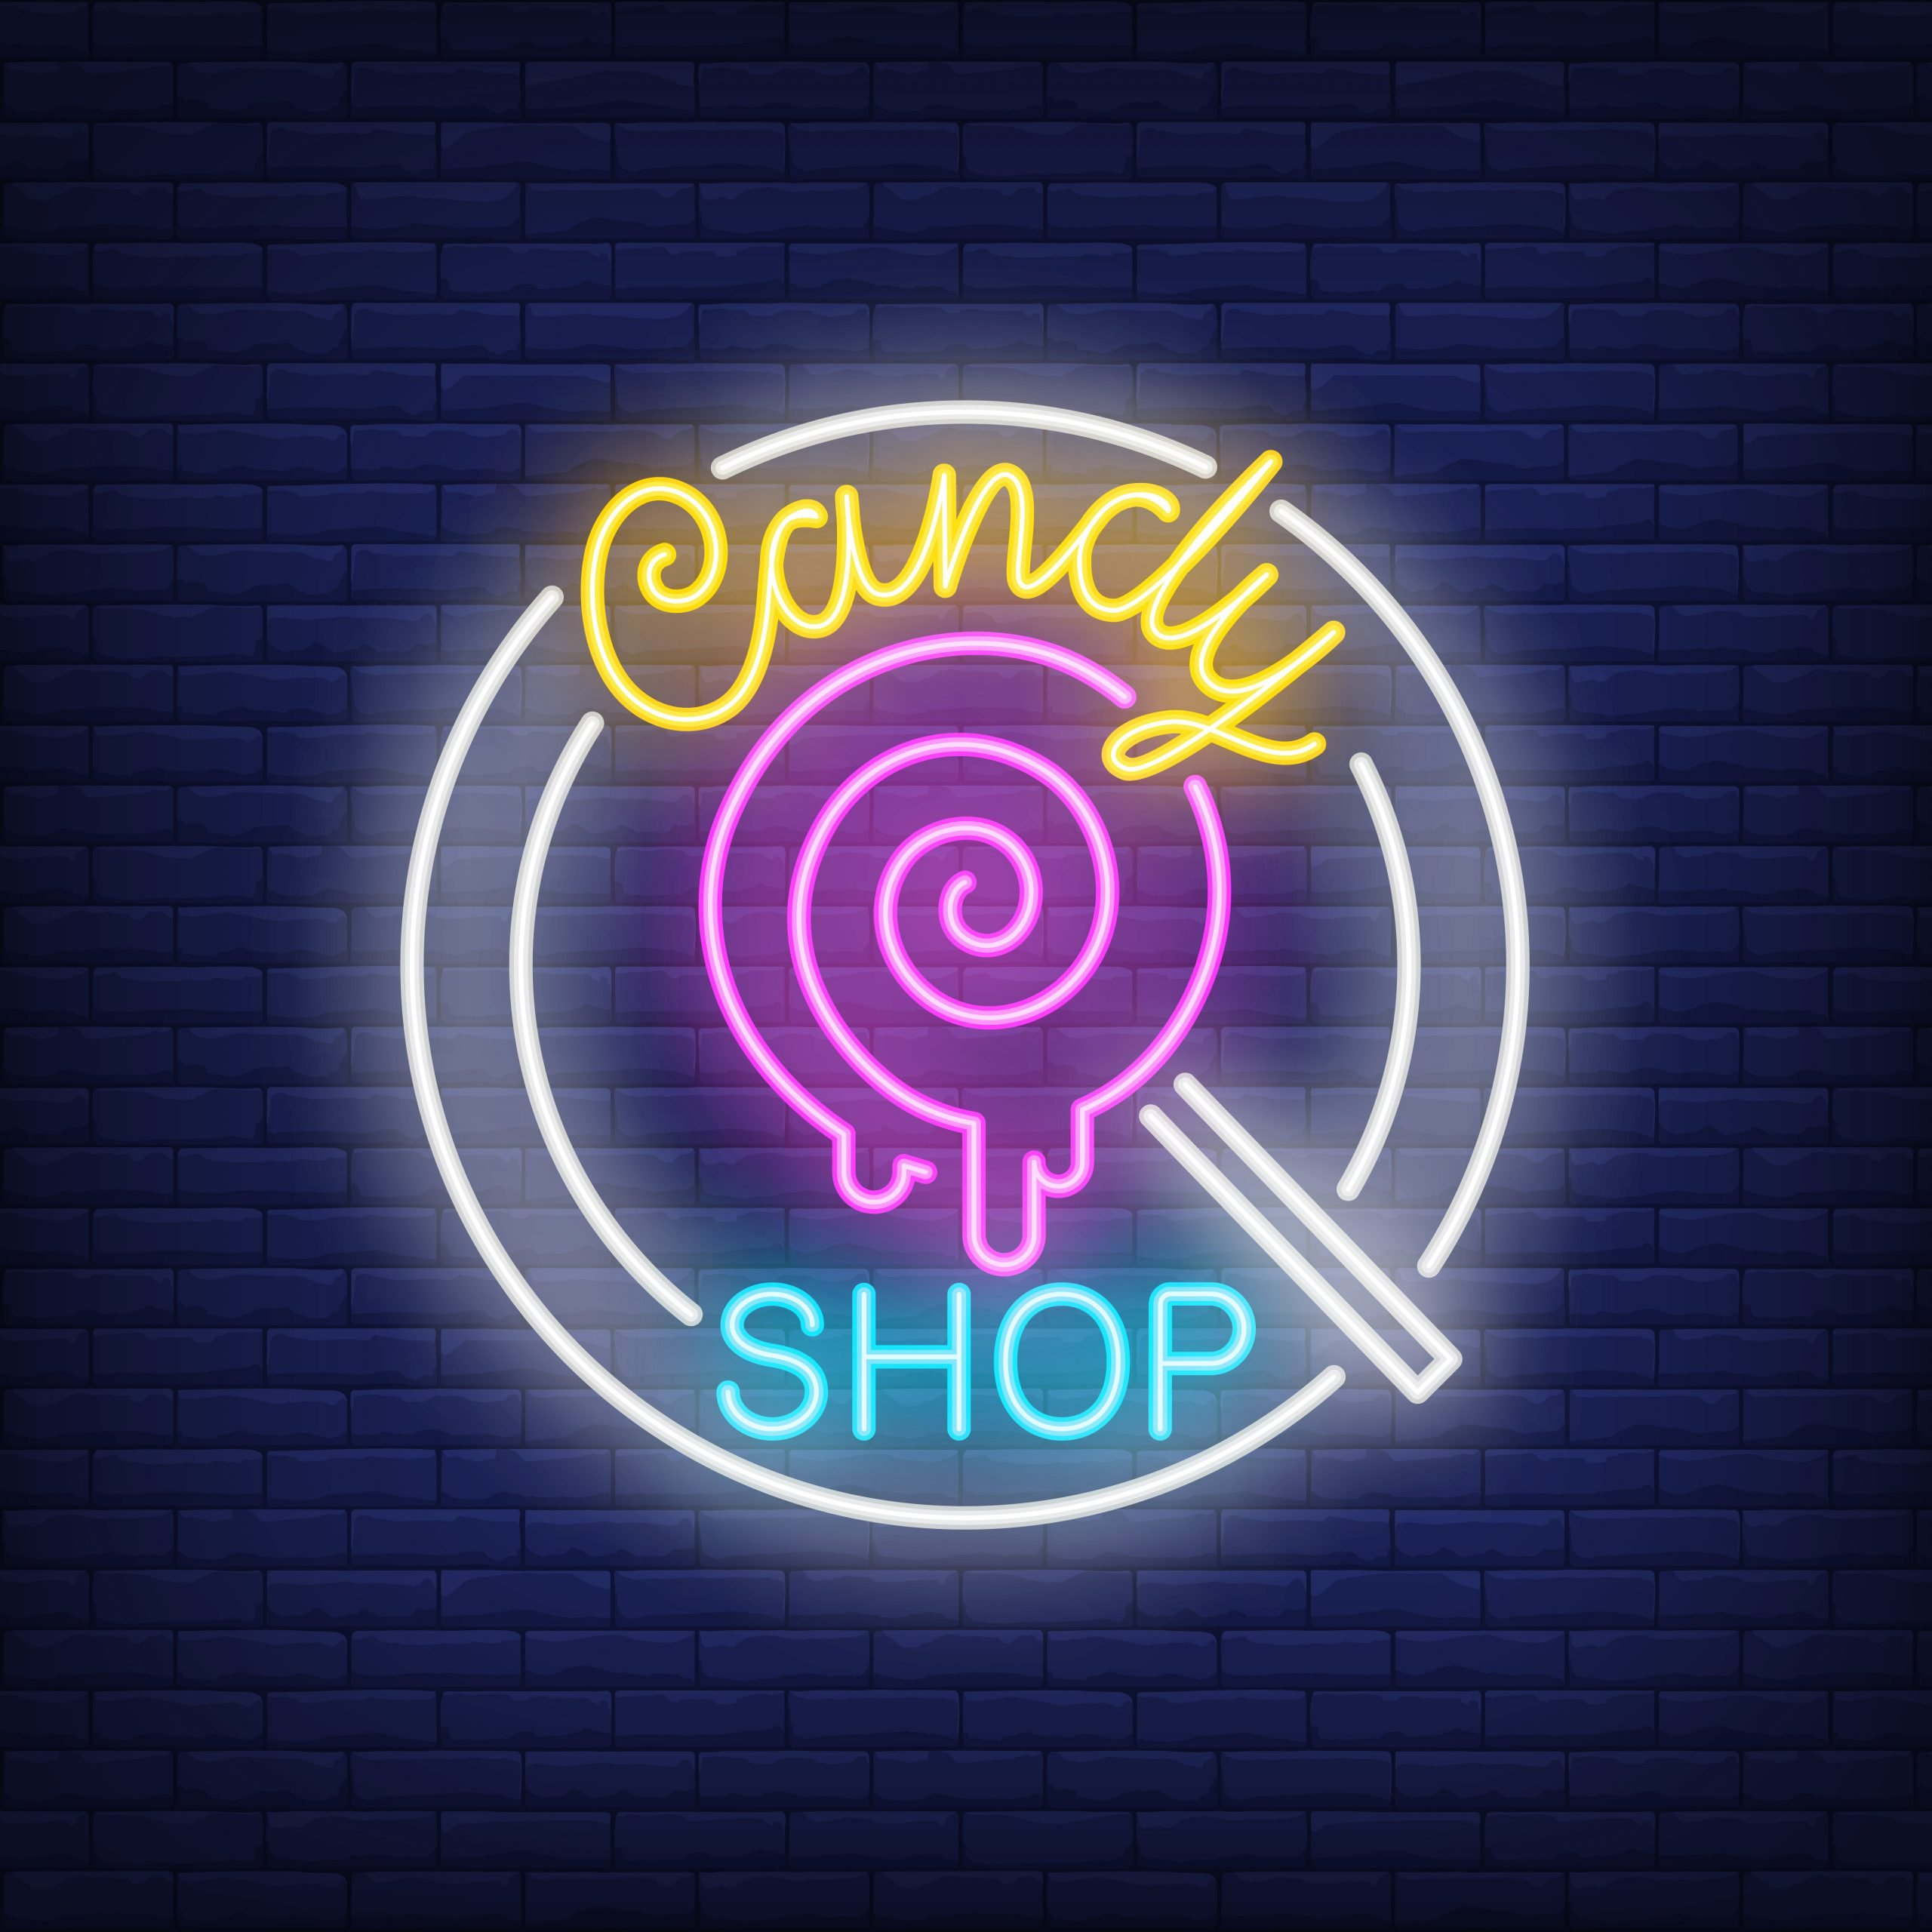 Candy shop neon sign. Pin-up lollipop on stick in circle on brick wall. Night bright advertisement. Vector illustration in neon style for cafe and confectionery